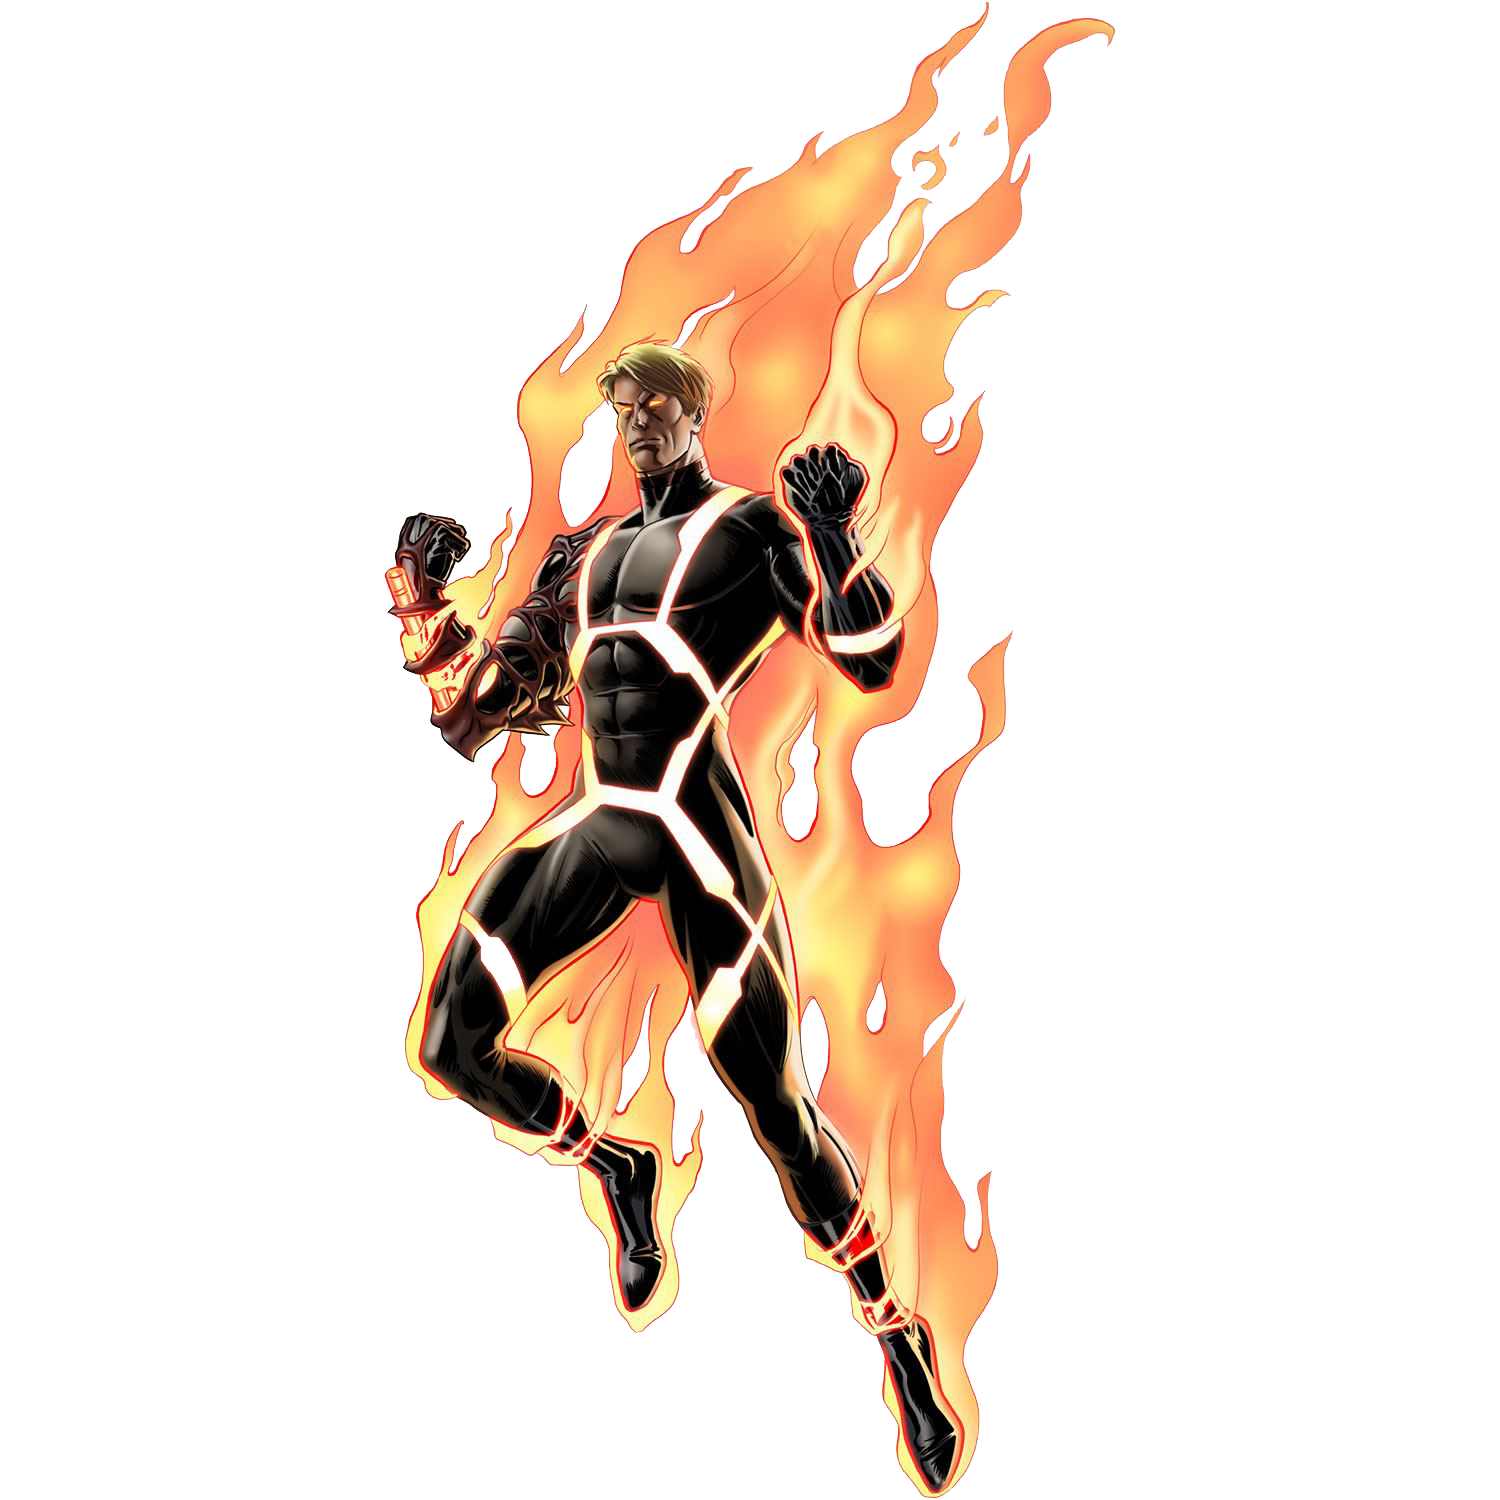 Human transparent background png. Torch clipart bamboo torch